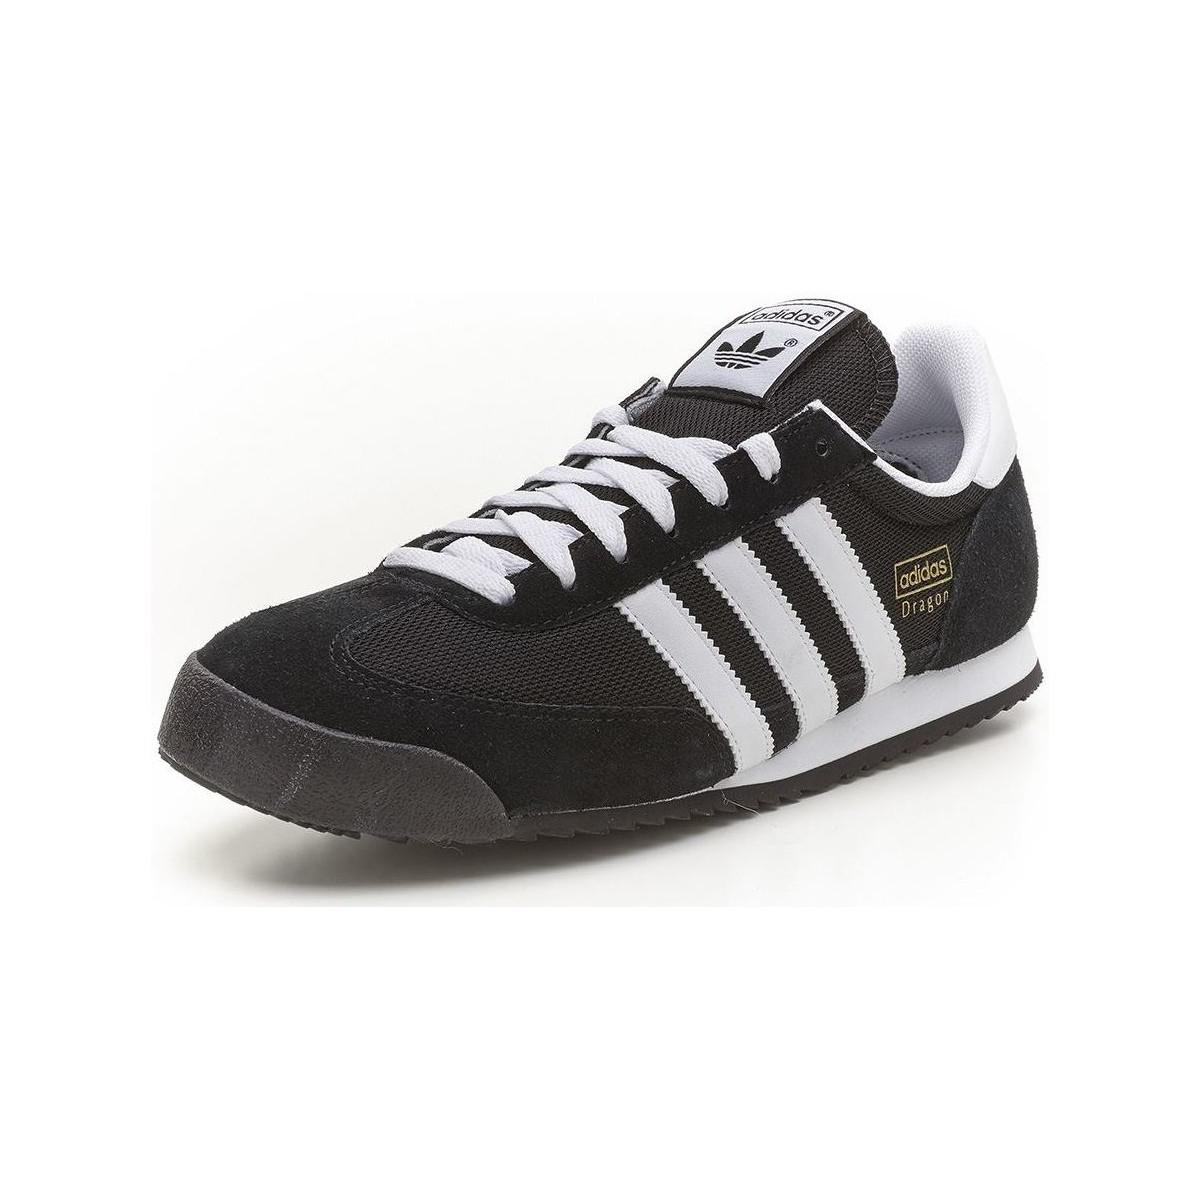 Adidas  Originals Dragon Retro Trainers Black White G16025 Mens Shoes  trainers In Black  View Fullscreen